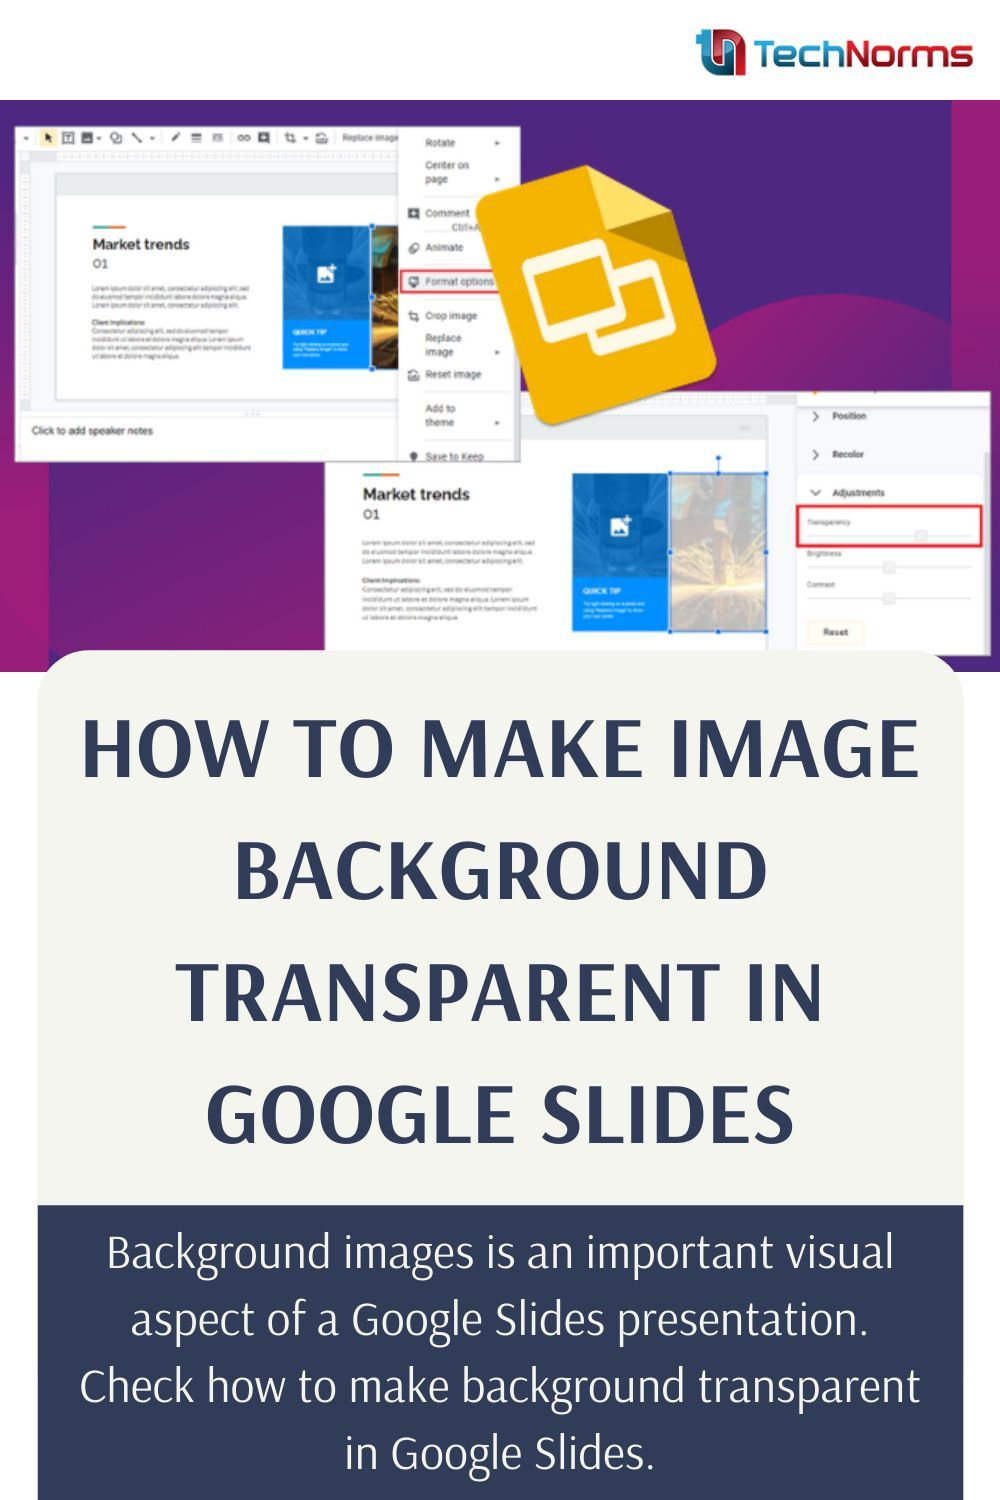 How To Make Image Background Transparent In Google Slides In 2021 Google Slides How To Make Image Google Tricks